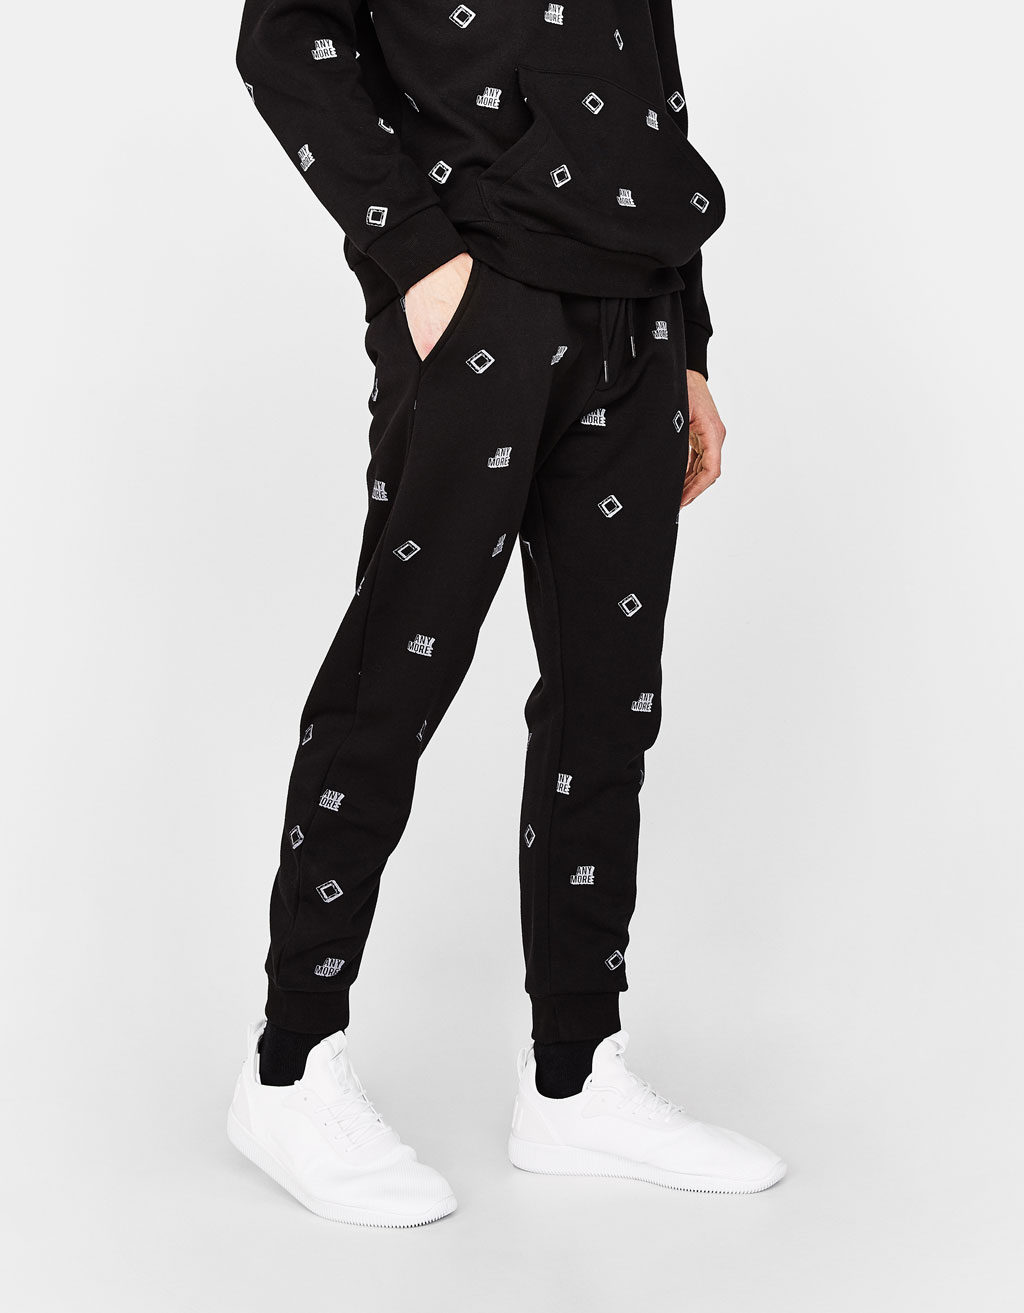 Twin set jogging trousers